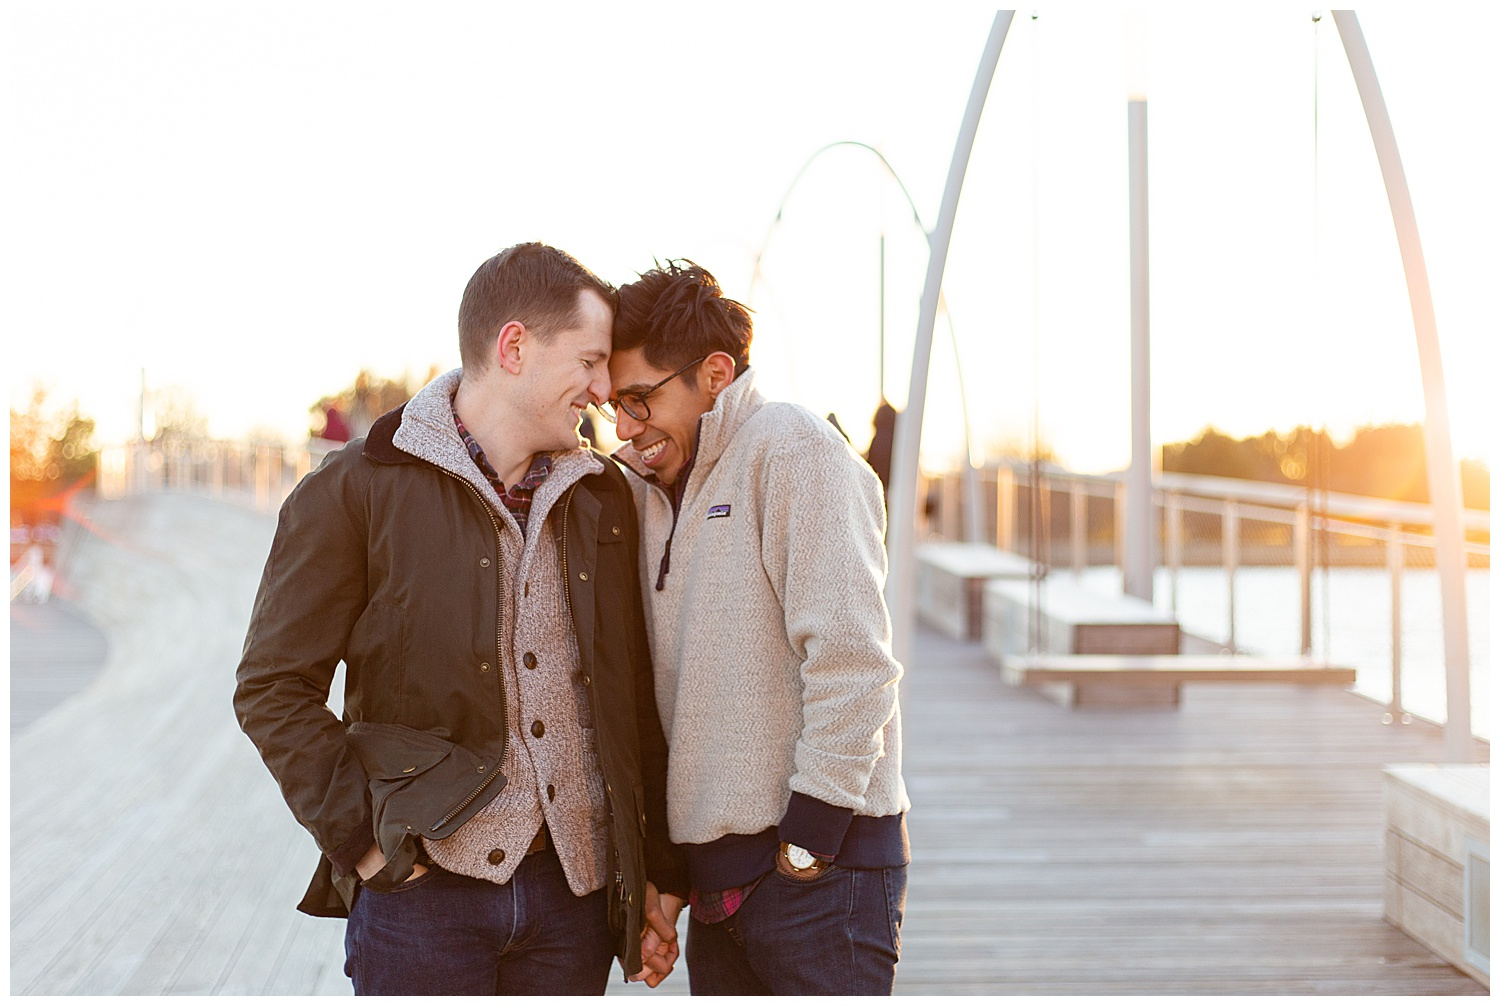 dc-wharf-engagement-emily-belson-photography-12.jpg